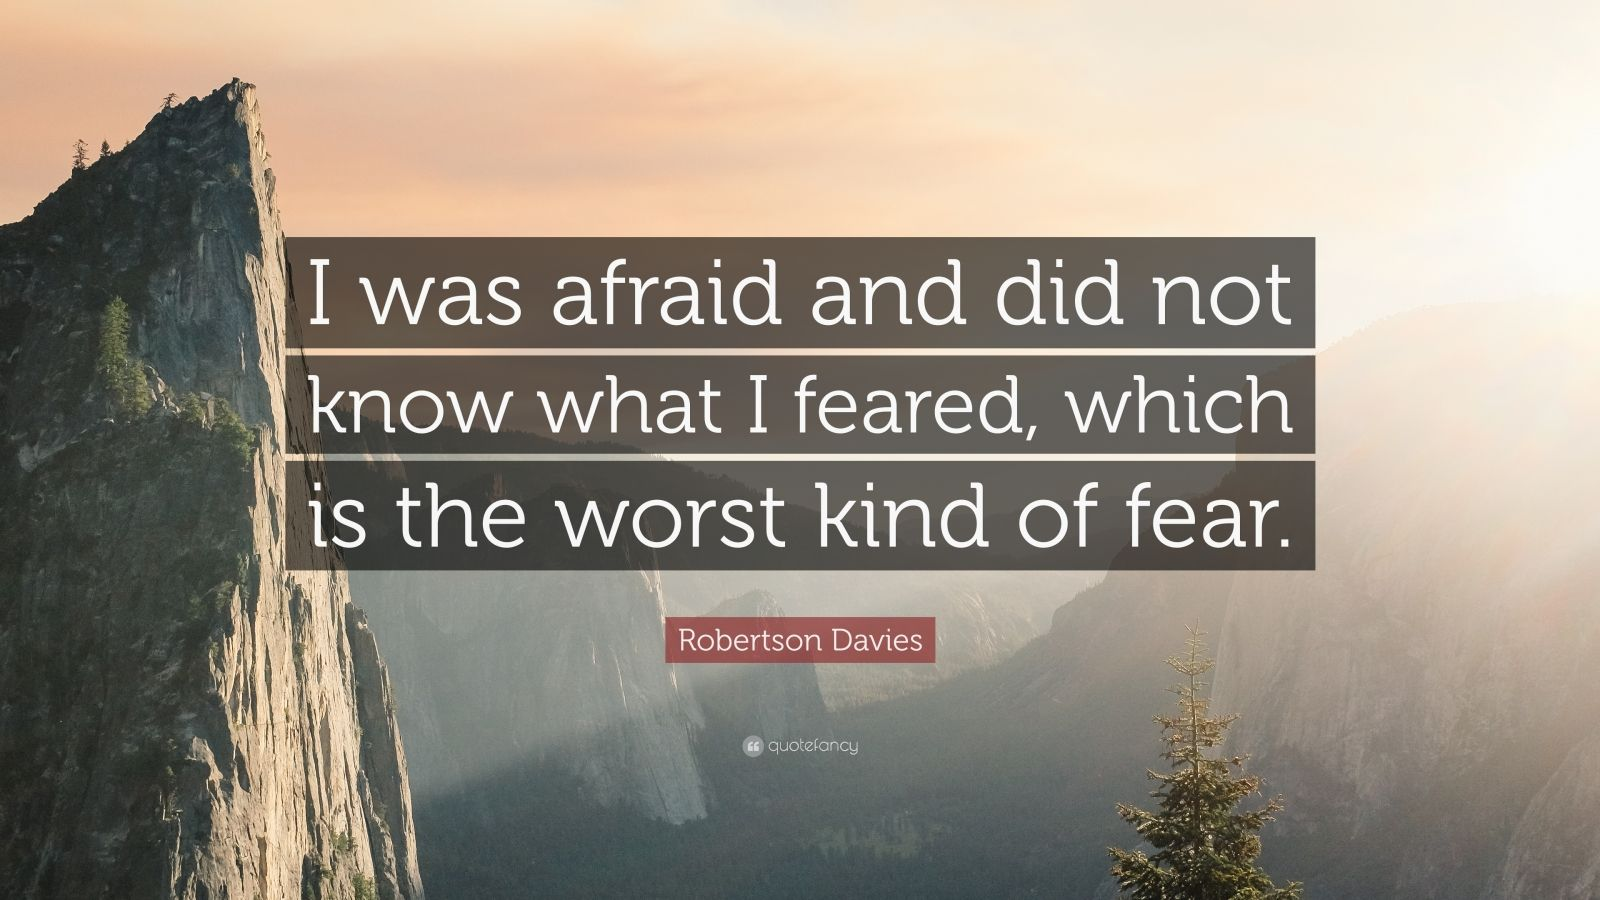 """Robertson Davies Quote: """"I was afraid and did not know what I feared, which is the worst kind of fear."""""""